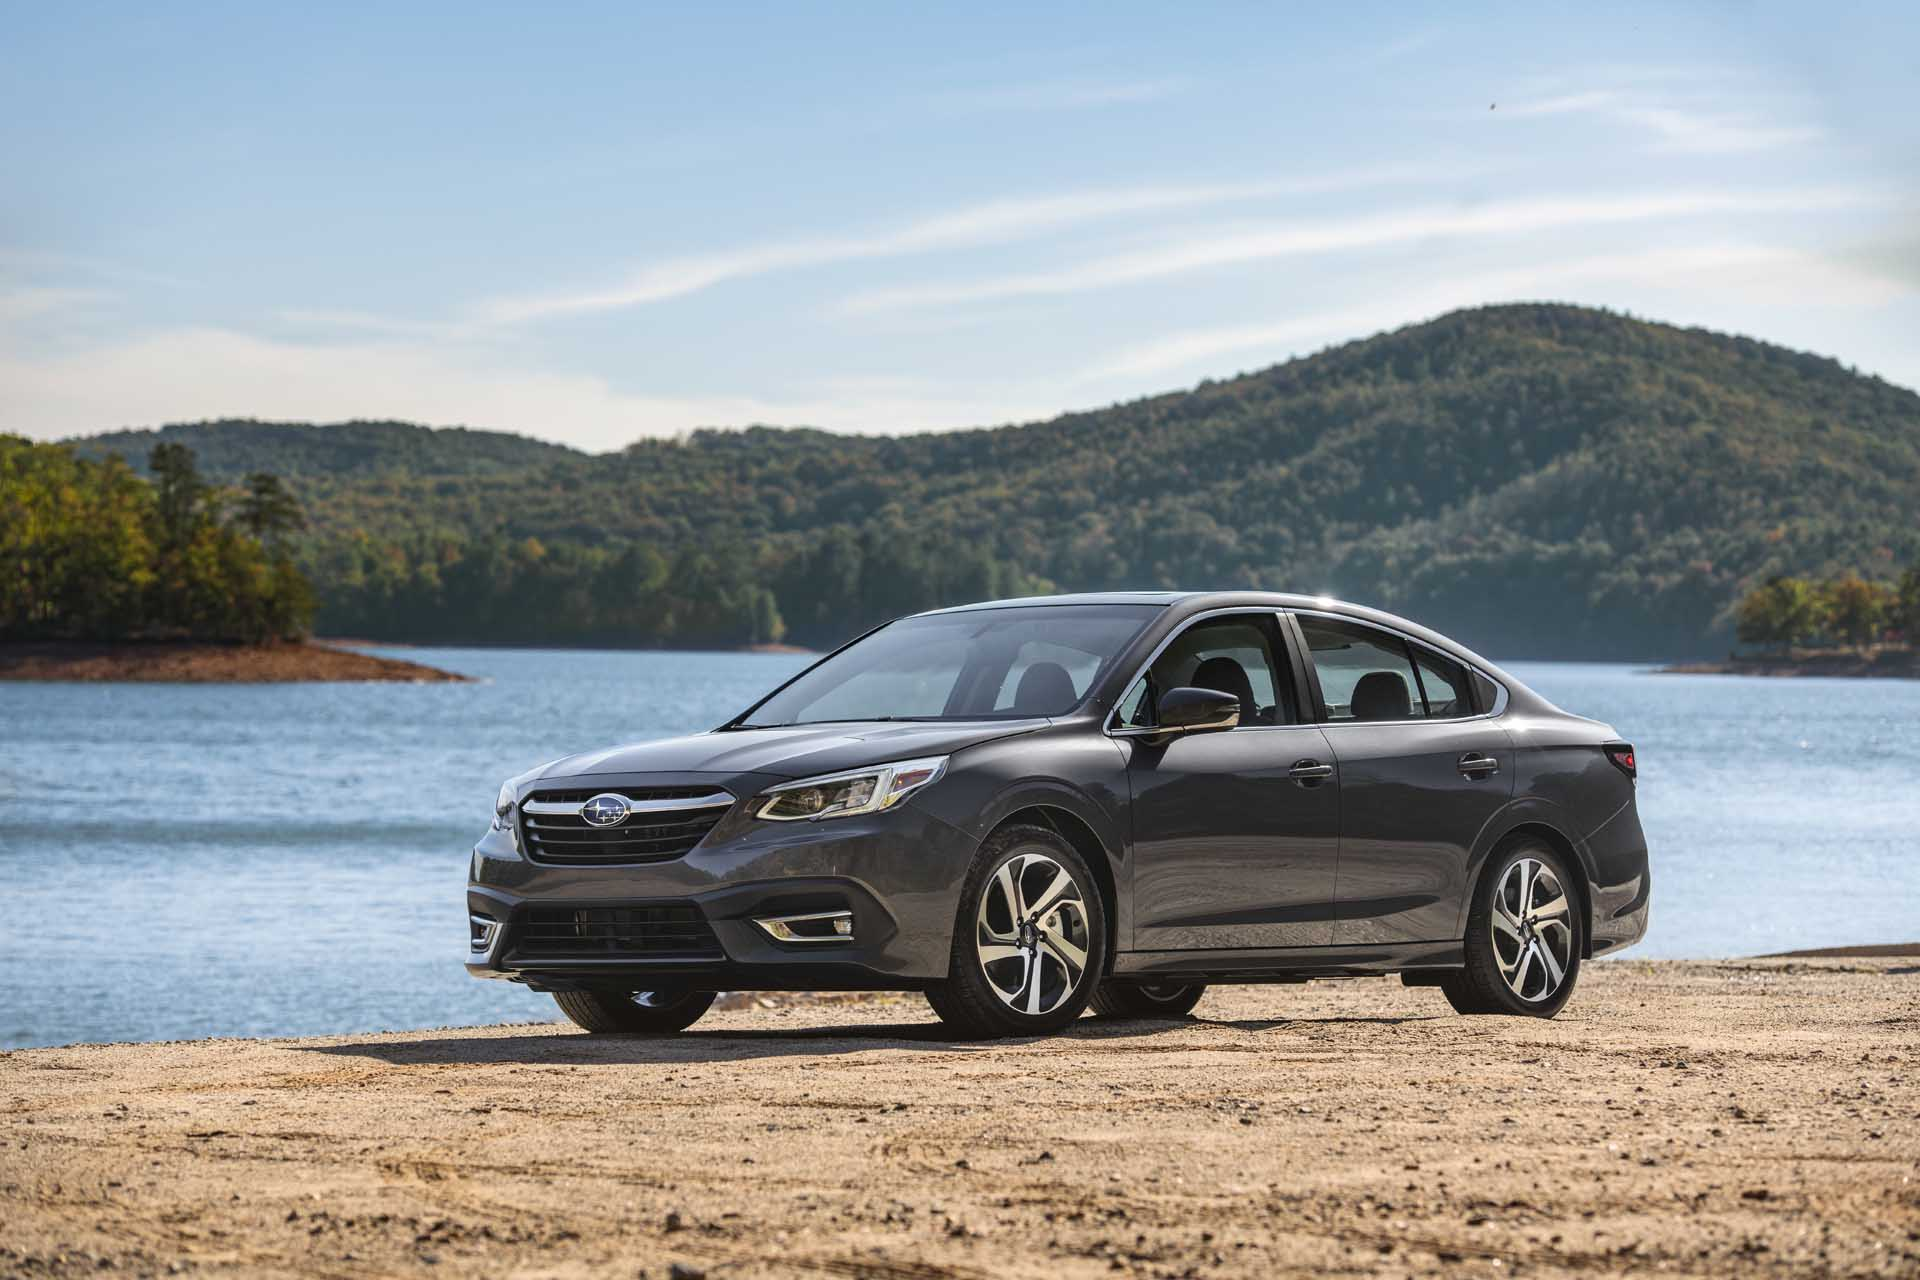 2020 subaru legacy review, ratings, specs, prices, and